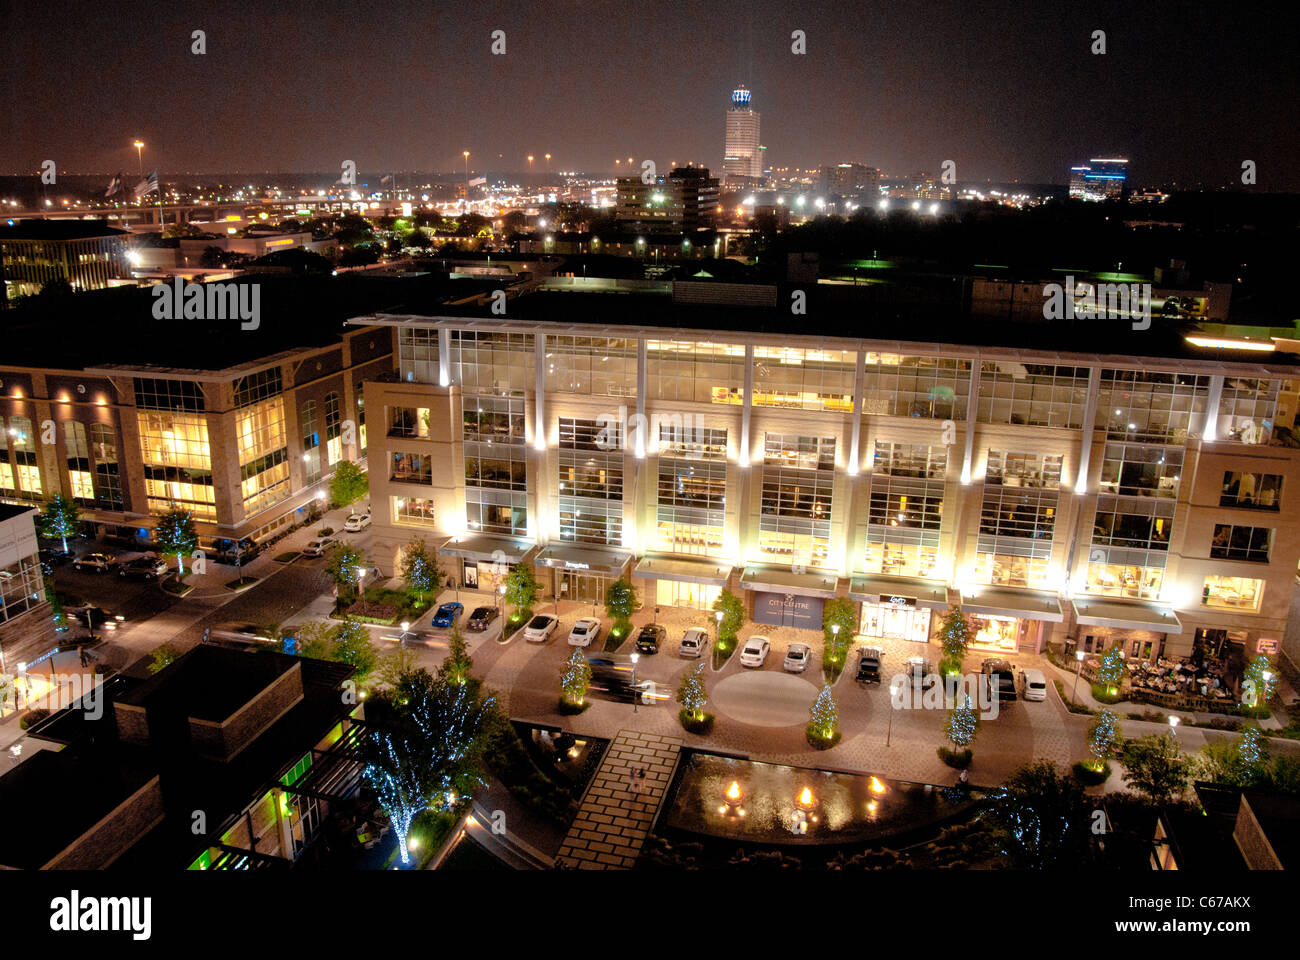 City Centre, a new upscale dining, retail, residential and hotel development in west  Houston, Texas, USA - Stock Image